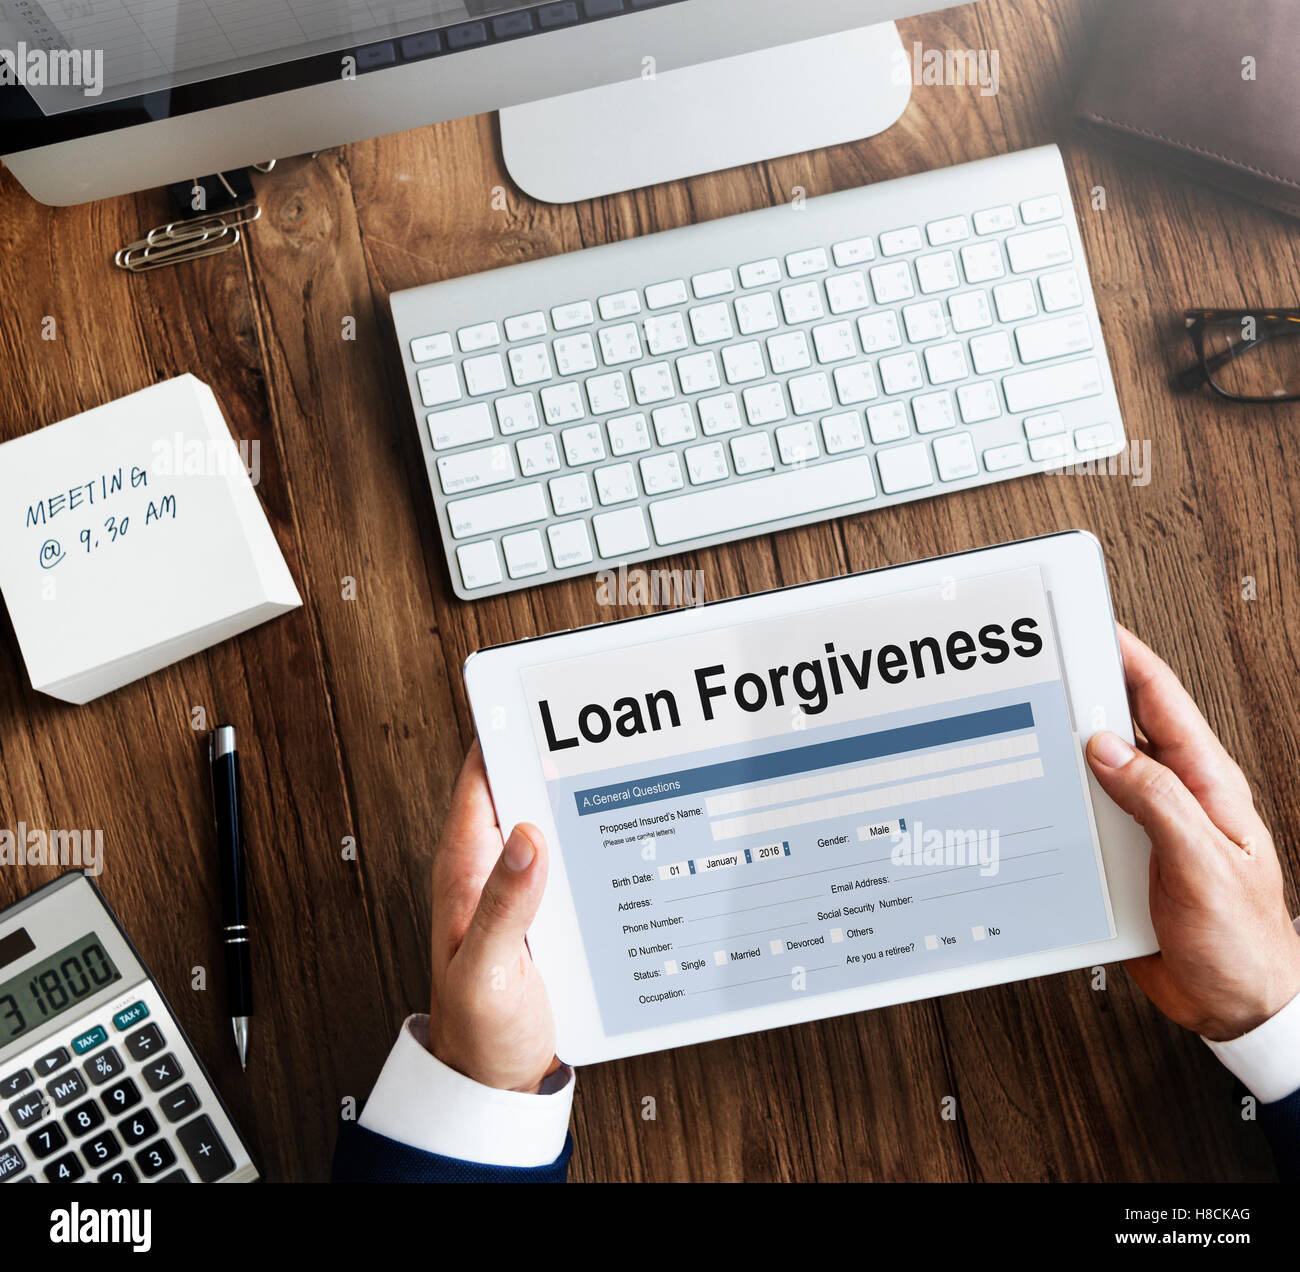 Loan Forgiveness Debt Filling Application Concept - Stock Image